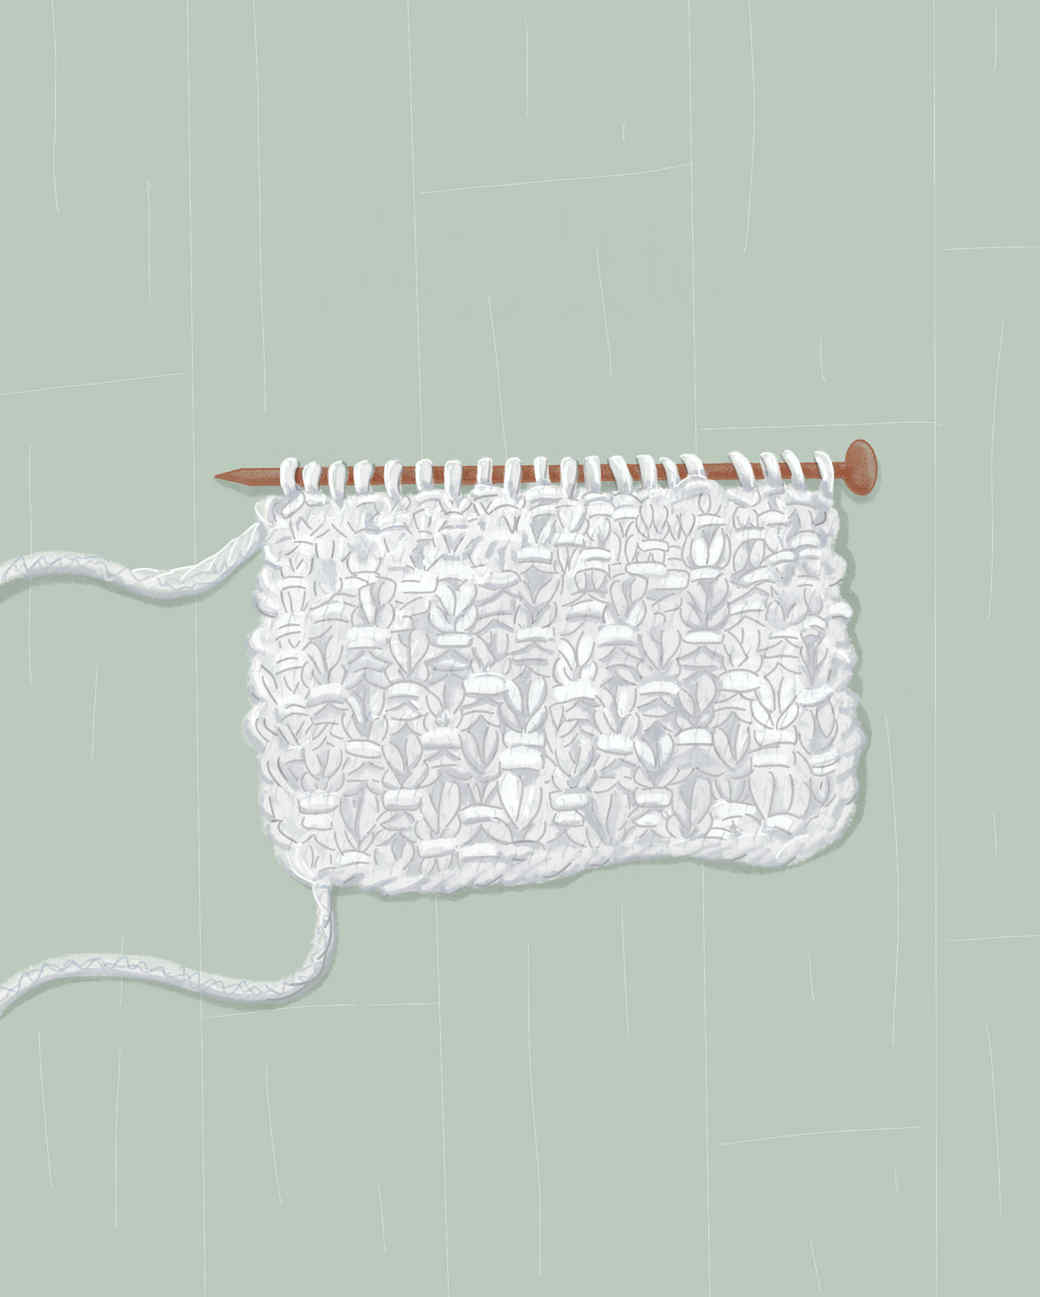 moss stitch in knitting